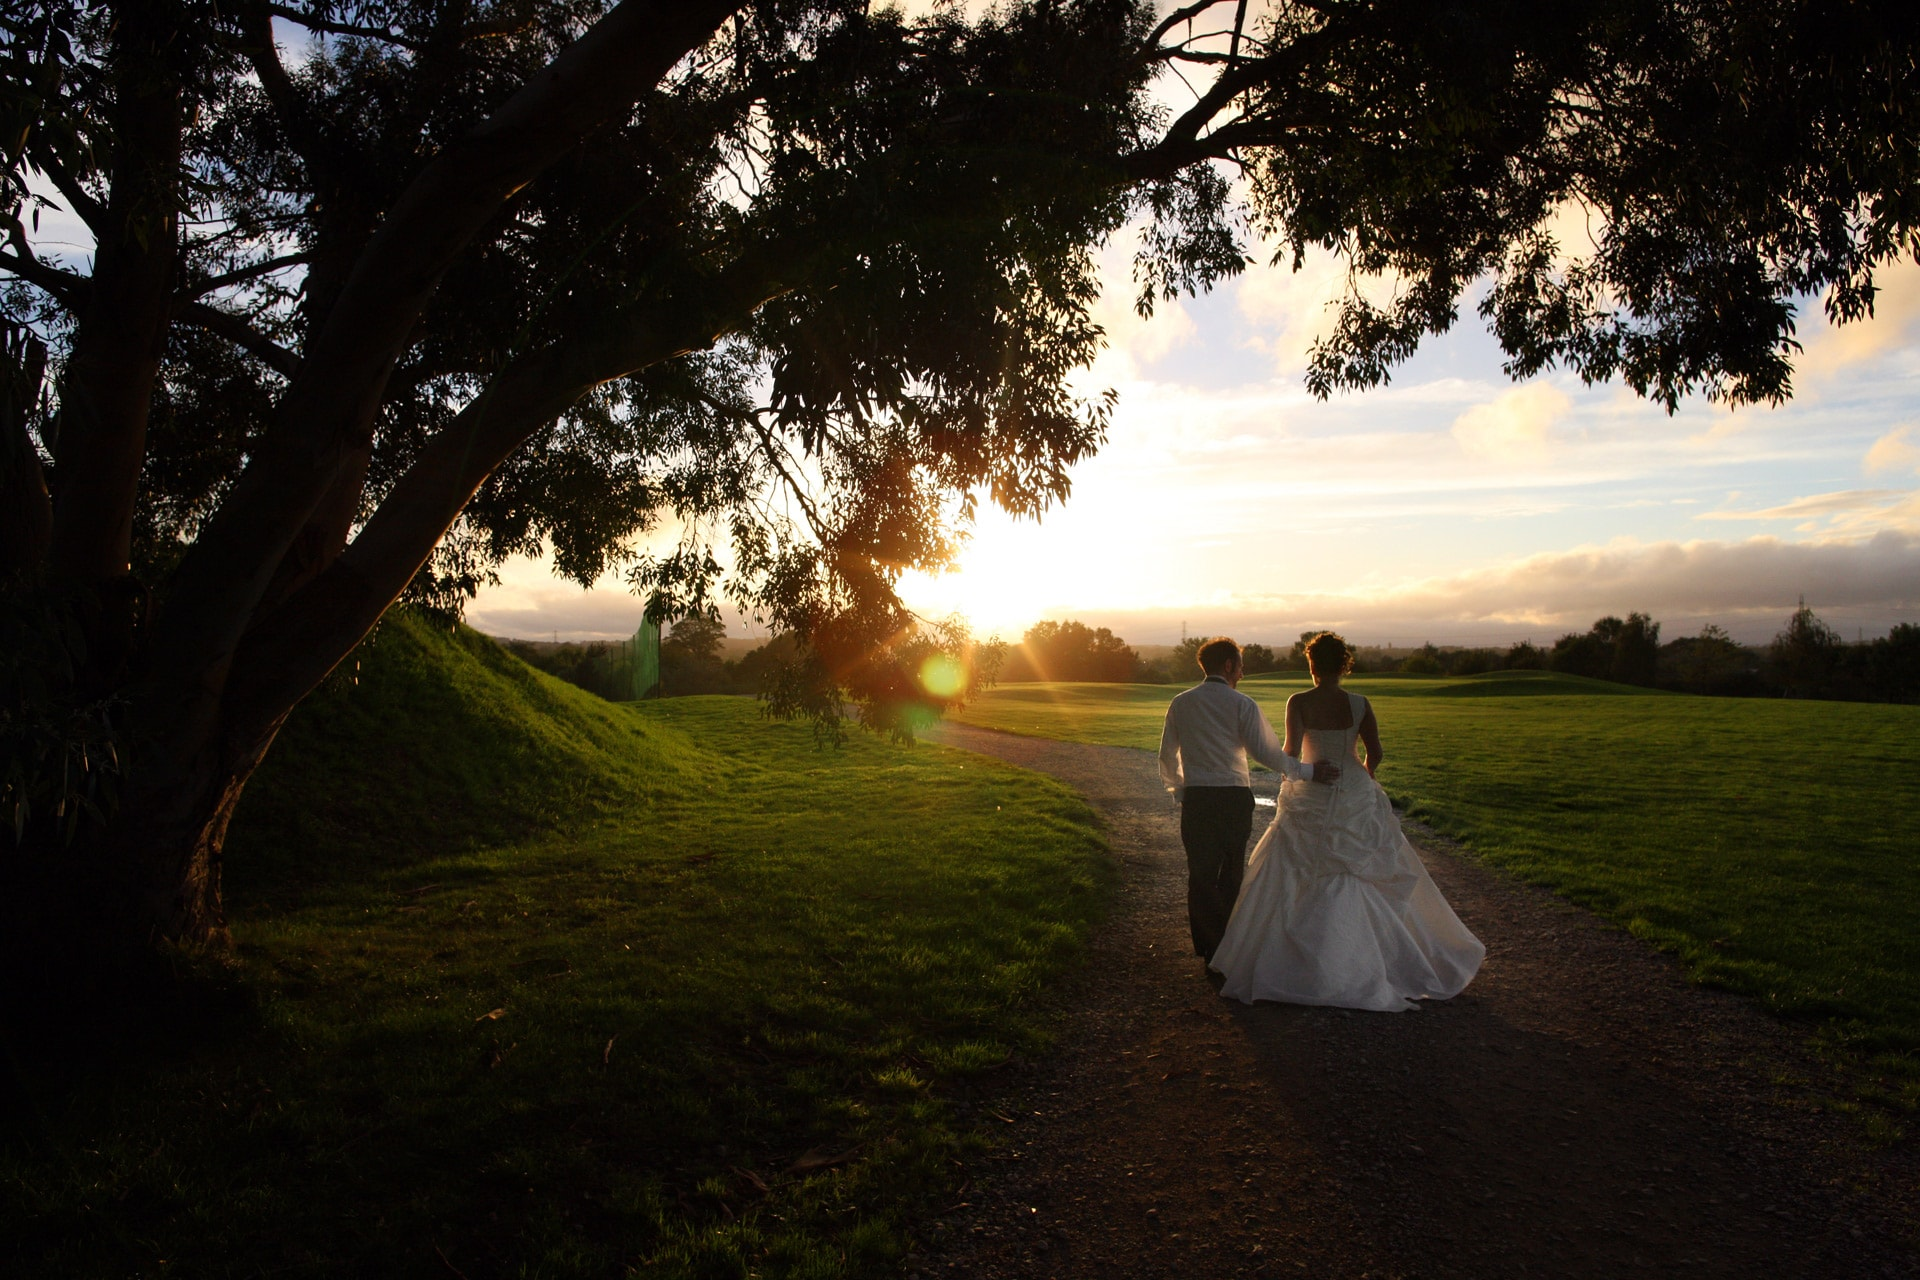 bride-groom-walk-at-sunset